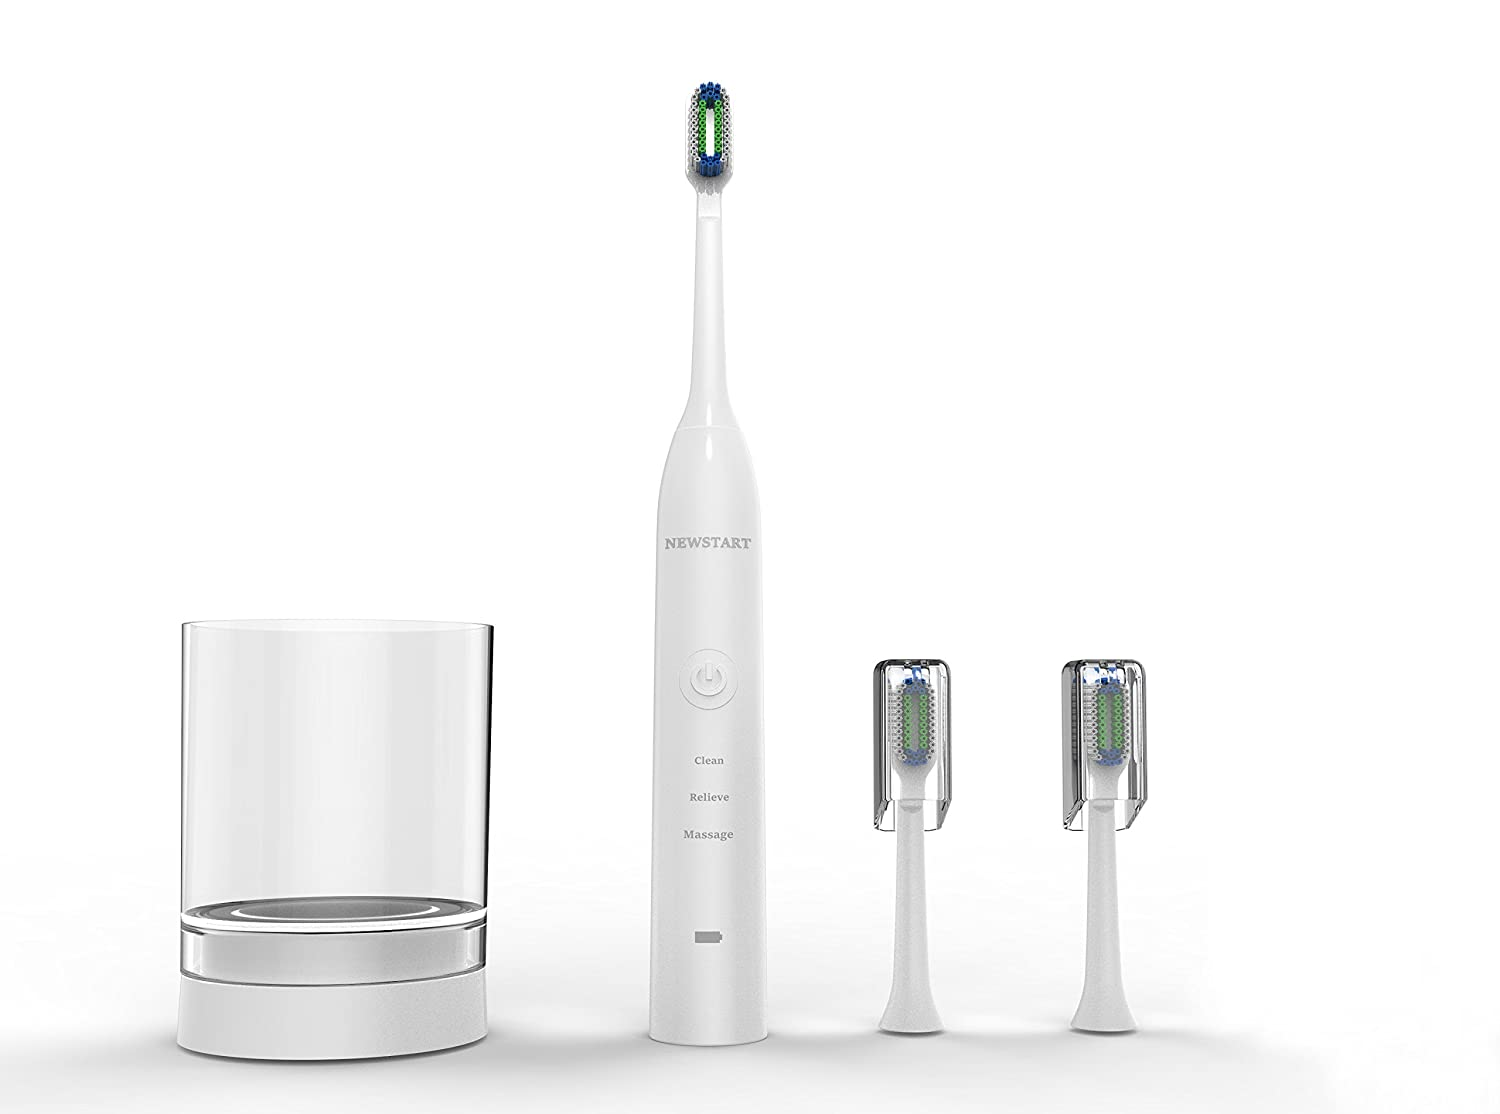 Sonic Electric Toothbrush, Power Rechargeable Toothbrush with 4 Brushing Modes, with 5 Replacement Heads White